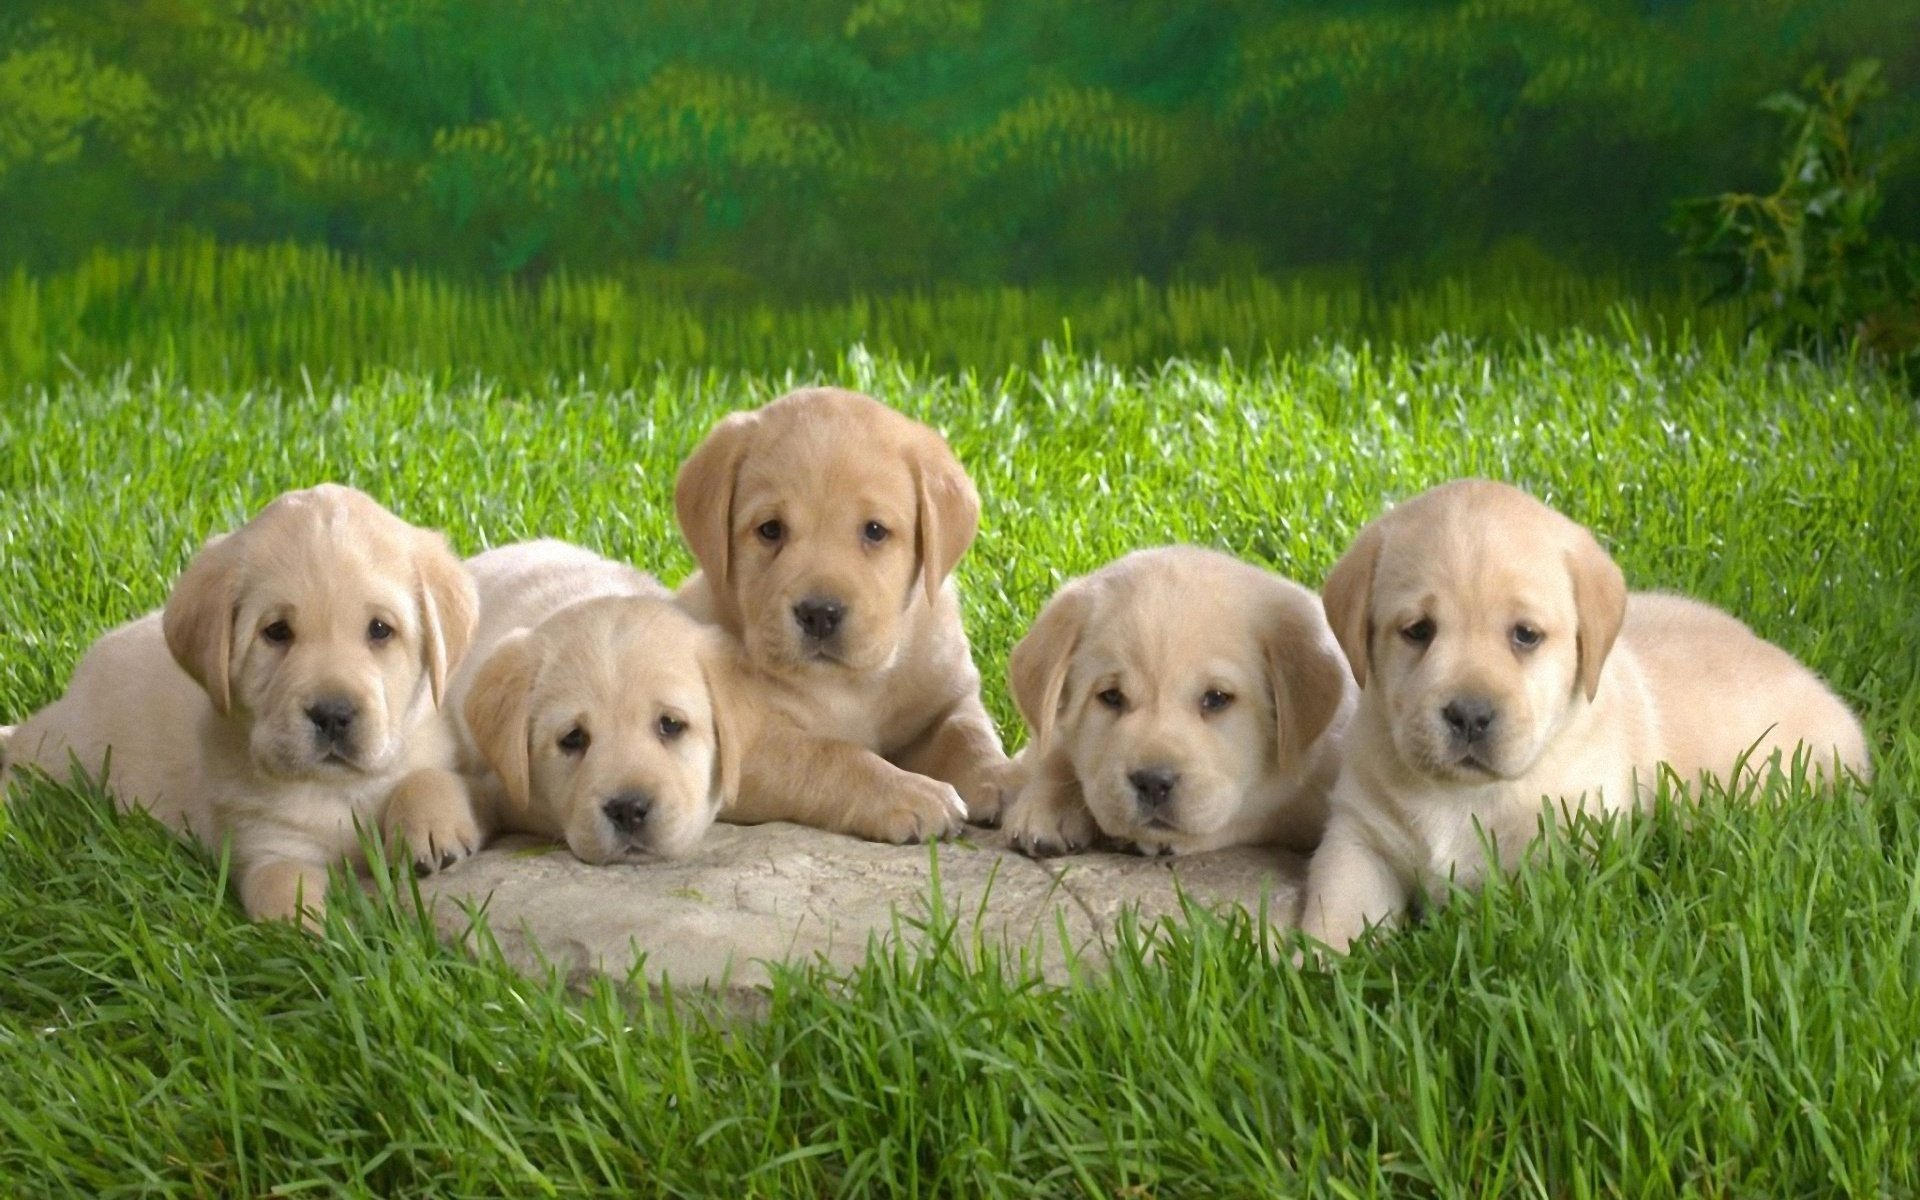 Cute Puppies HD Desktop Wallpaper HD Desktop Wallpaper 1920x1200